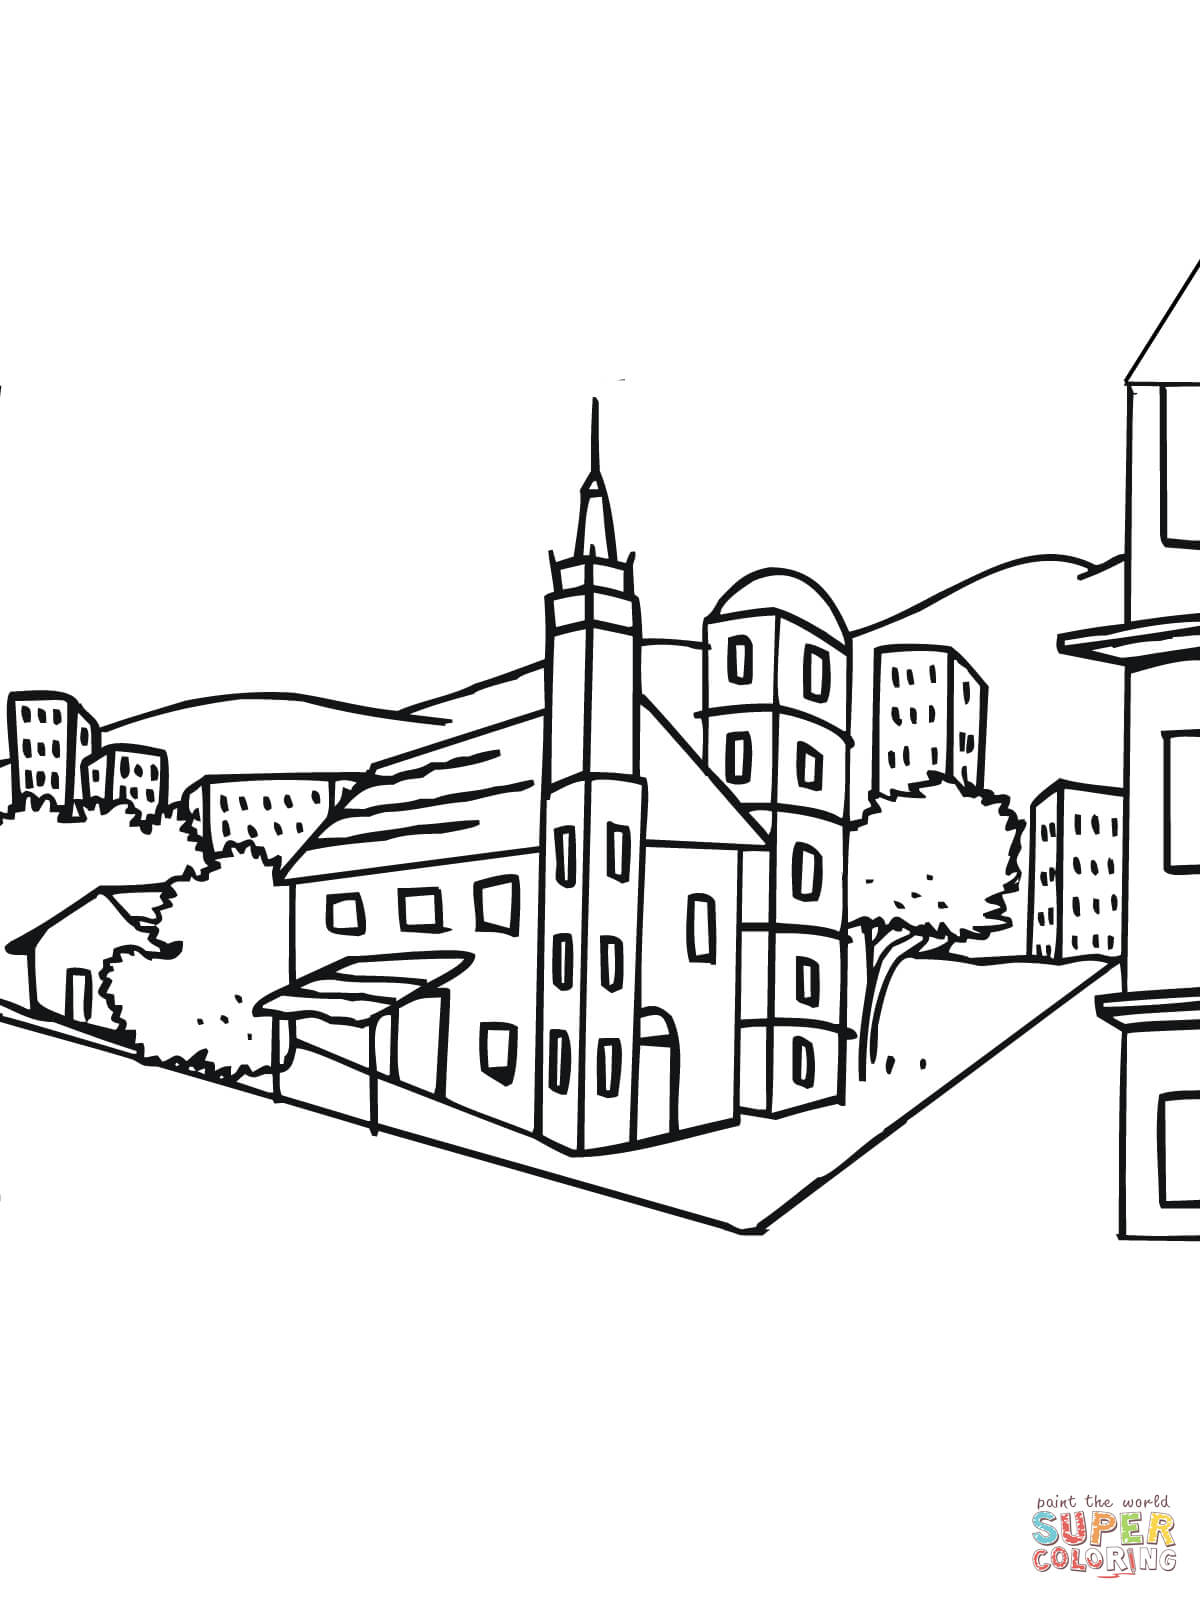 1200x1600 City Landscape Coloring Pages Sweden City Landscape Coloring Page